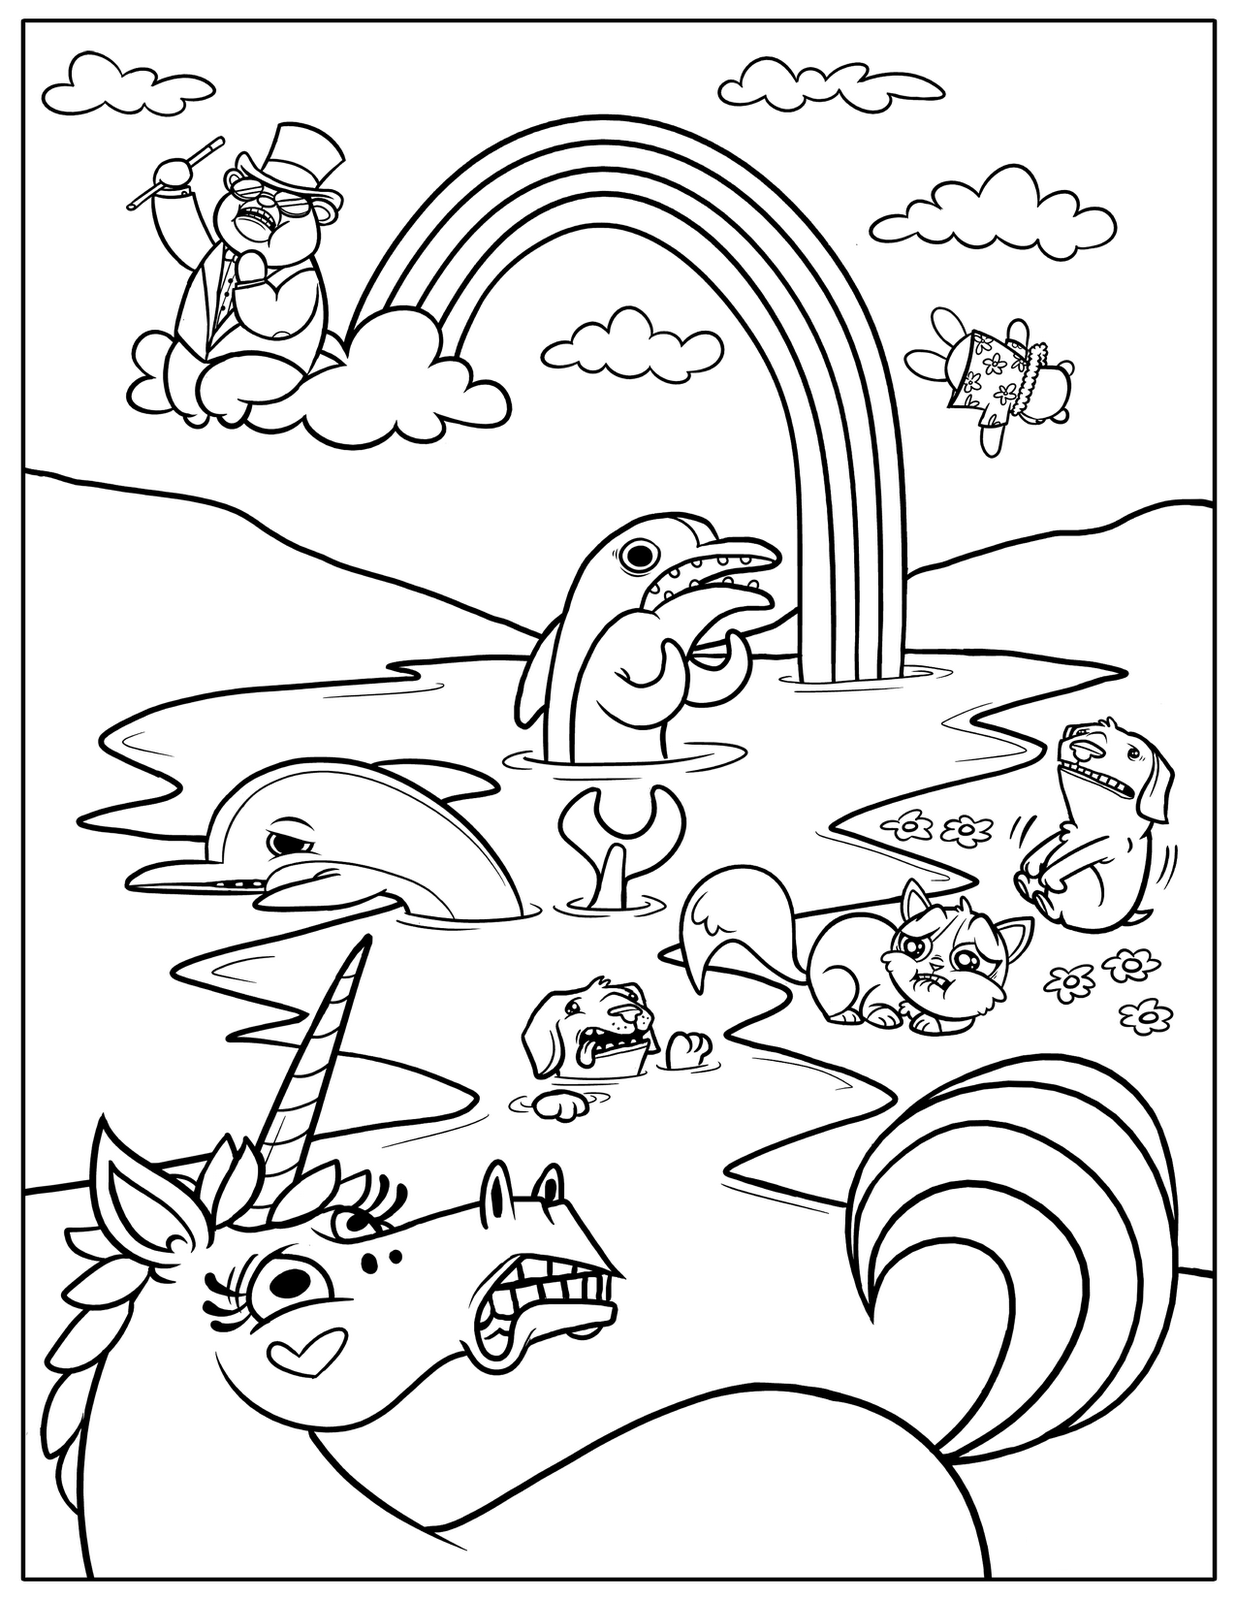 rainbow coloring pages kids printable - Printable Kid Coloring Pages